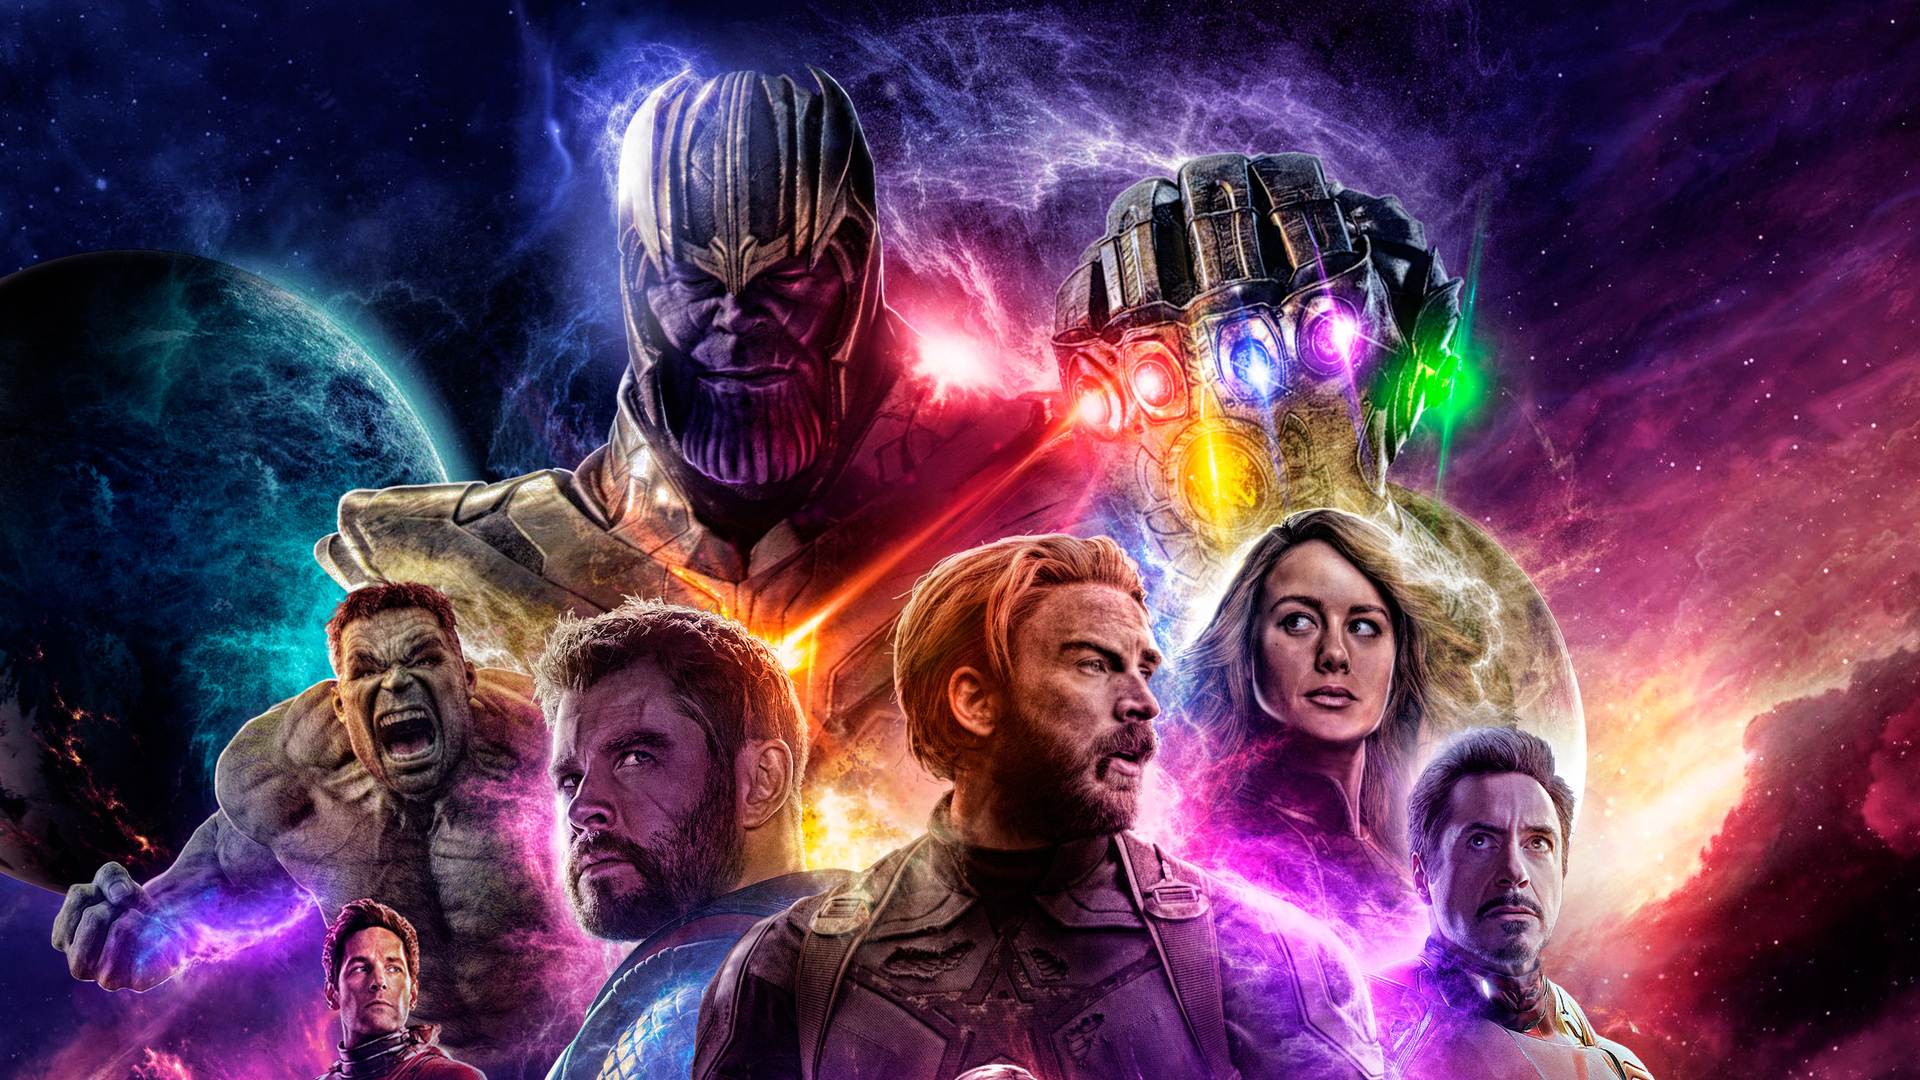 1920x1080 Avengers 4 End Game 2019 Laptop Full Hd 1080p Hd